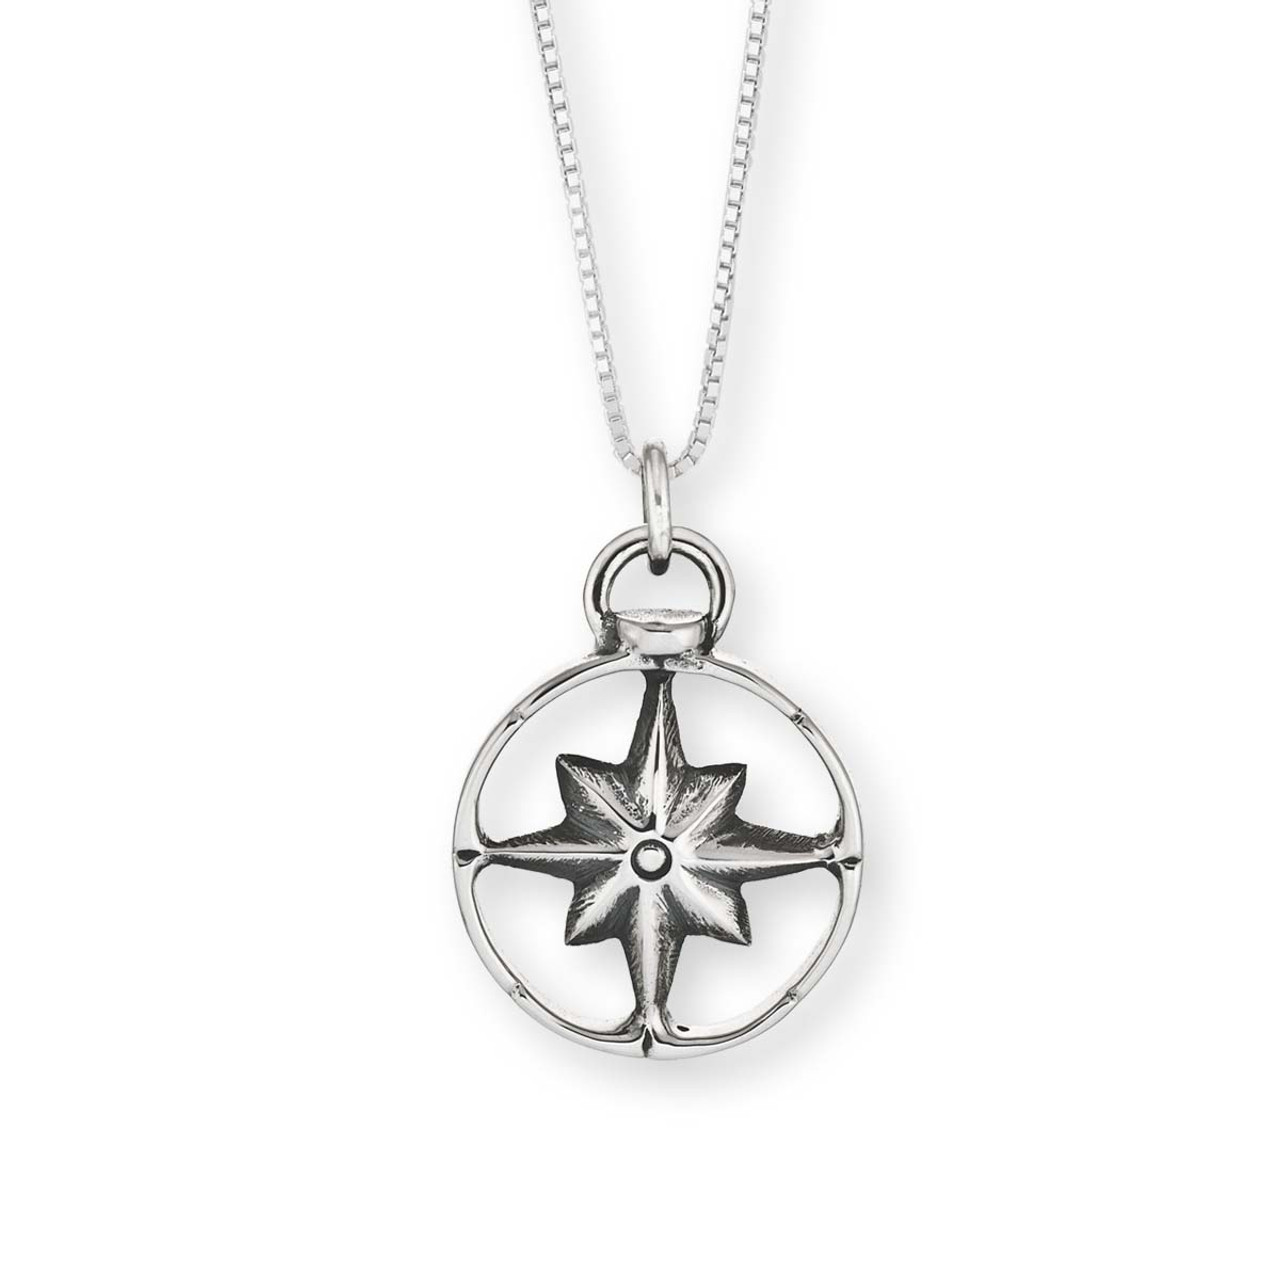 Sterling silver compass pendant jh breakell sterling silver compass pendant aloadofball Image collections